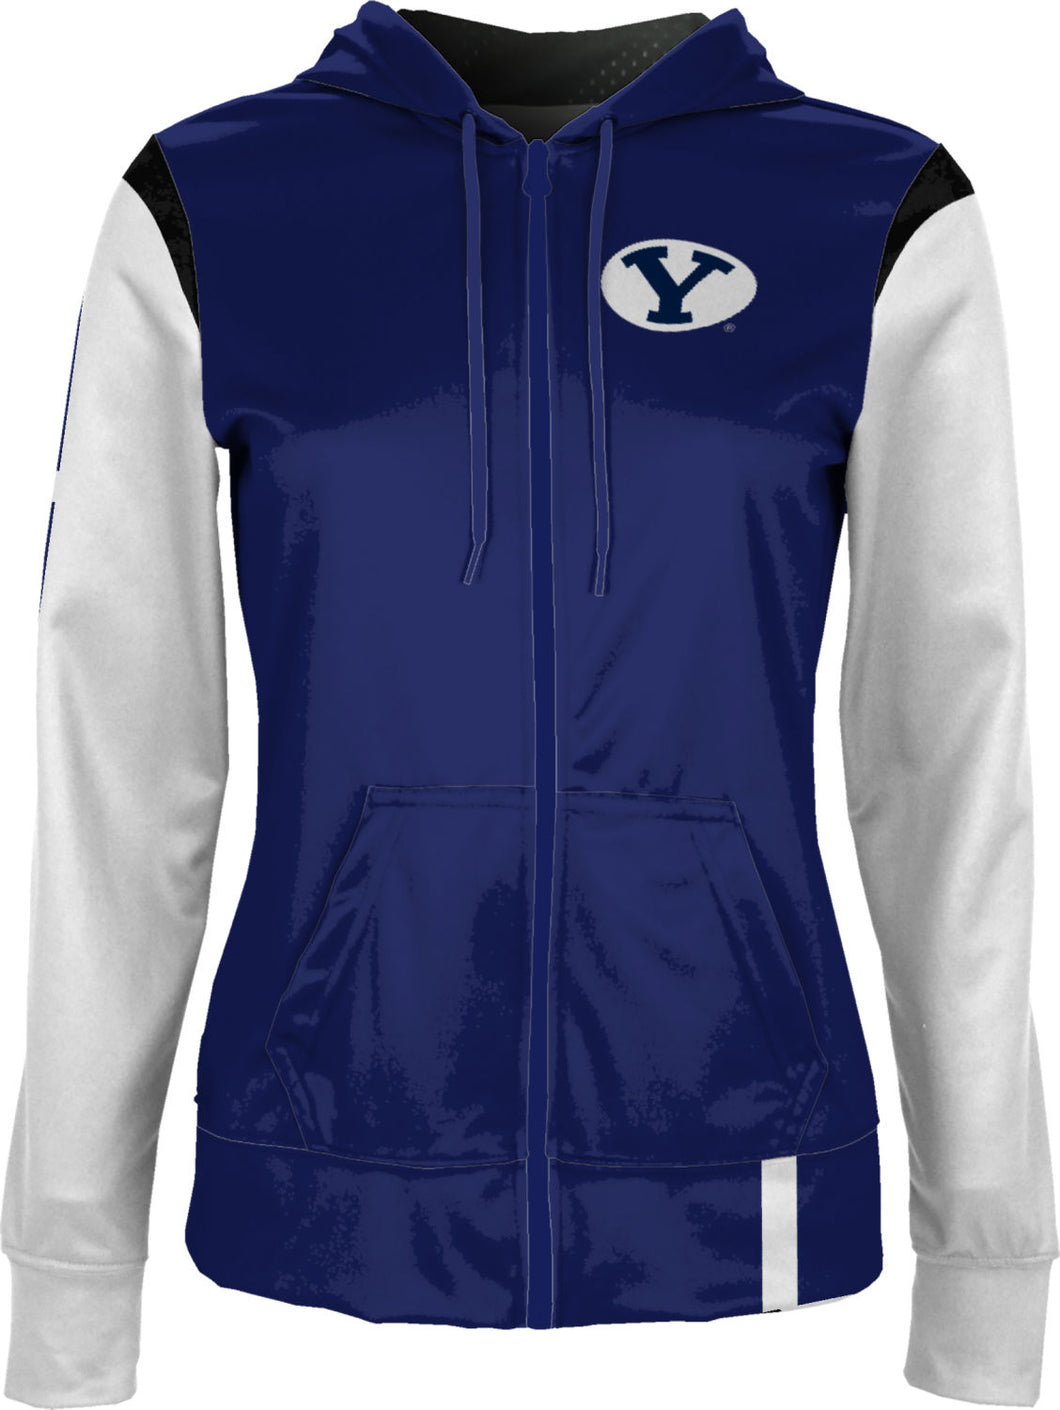 Brigham Young University: Women's Full Zip Hoodie - Tailgate